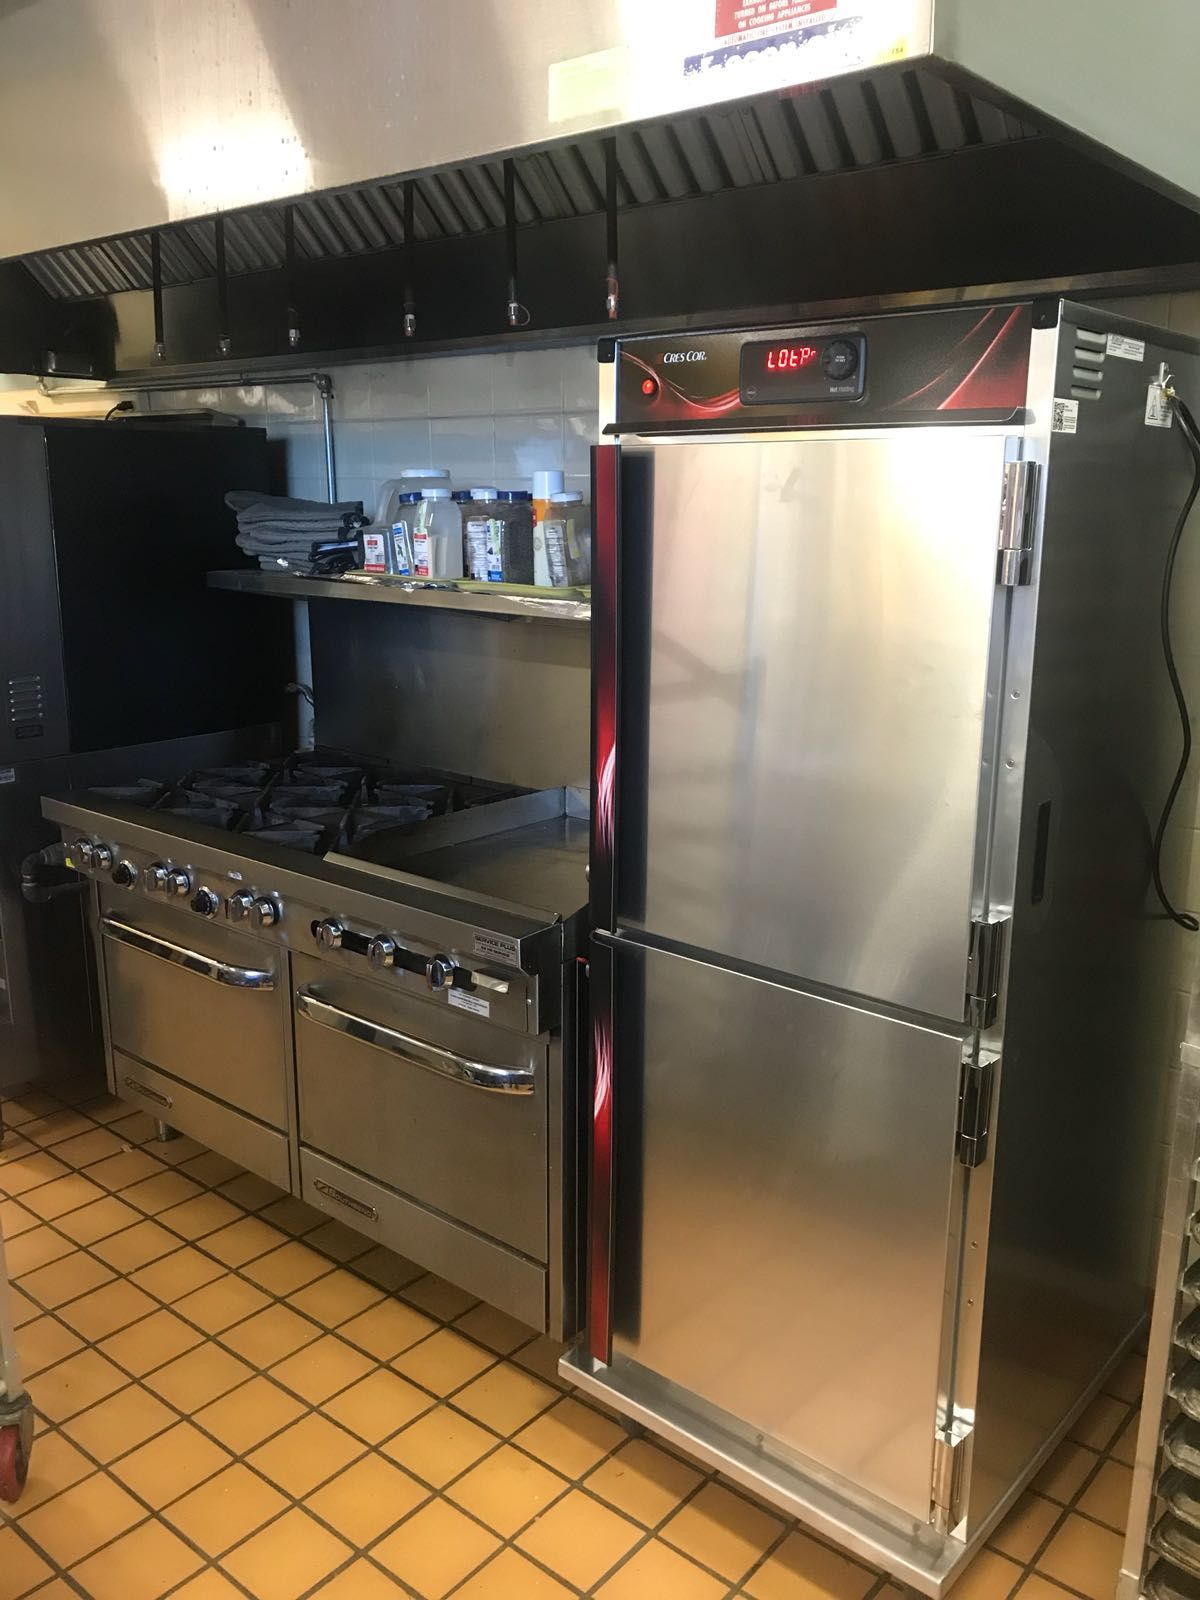 Pin By Aj Allick On Commercial Industrial Catering Kitchens